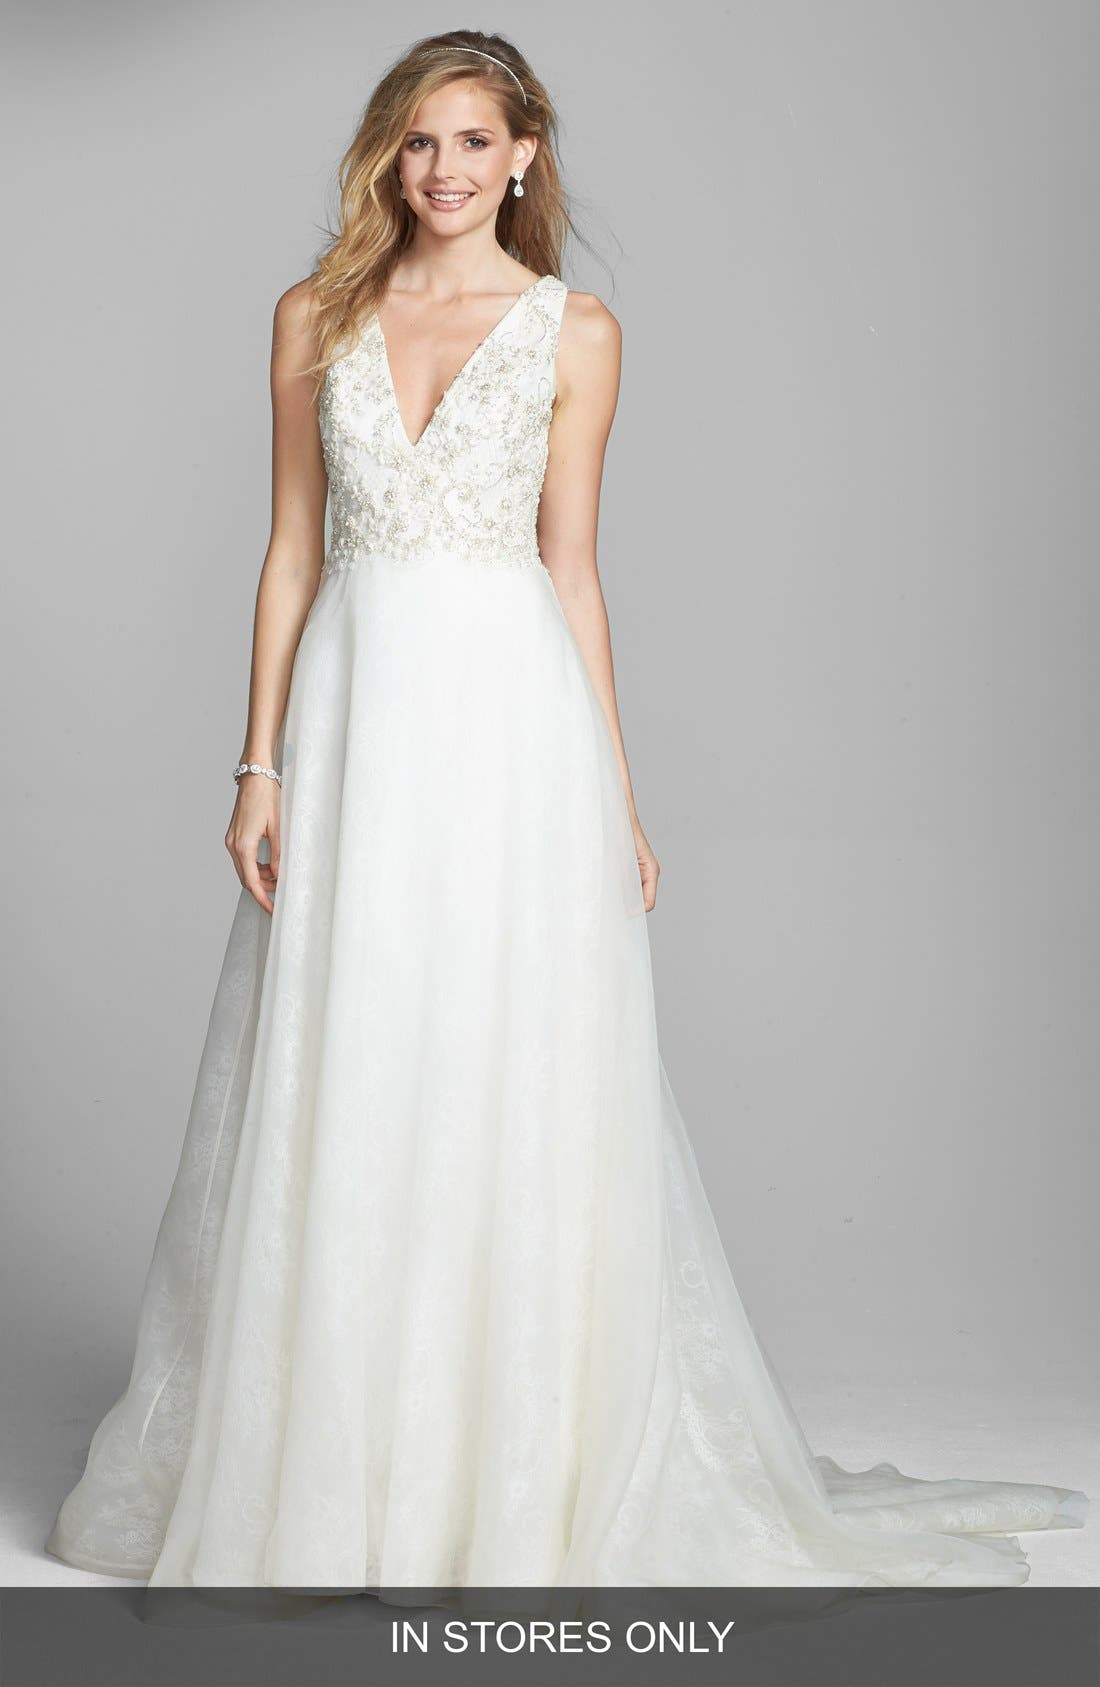 Alternate Image 1 Selected - Badgley Mischka Bridal 'Lana' Embellished Silk Organza Dress (In Stores Only)